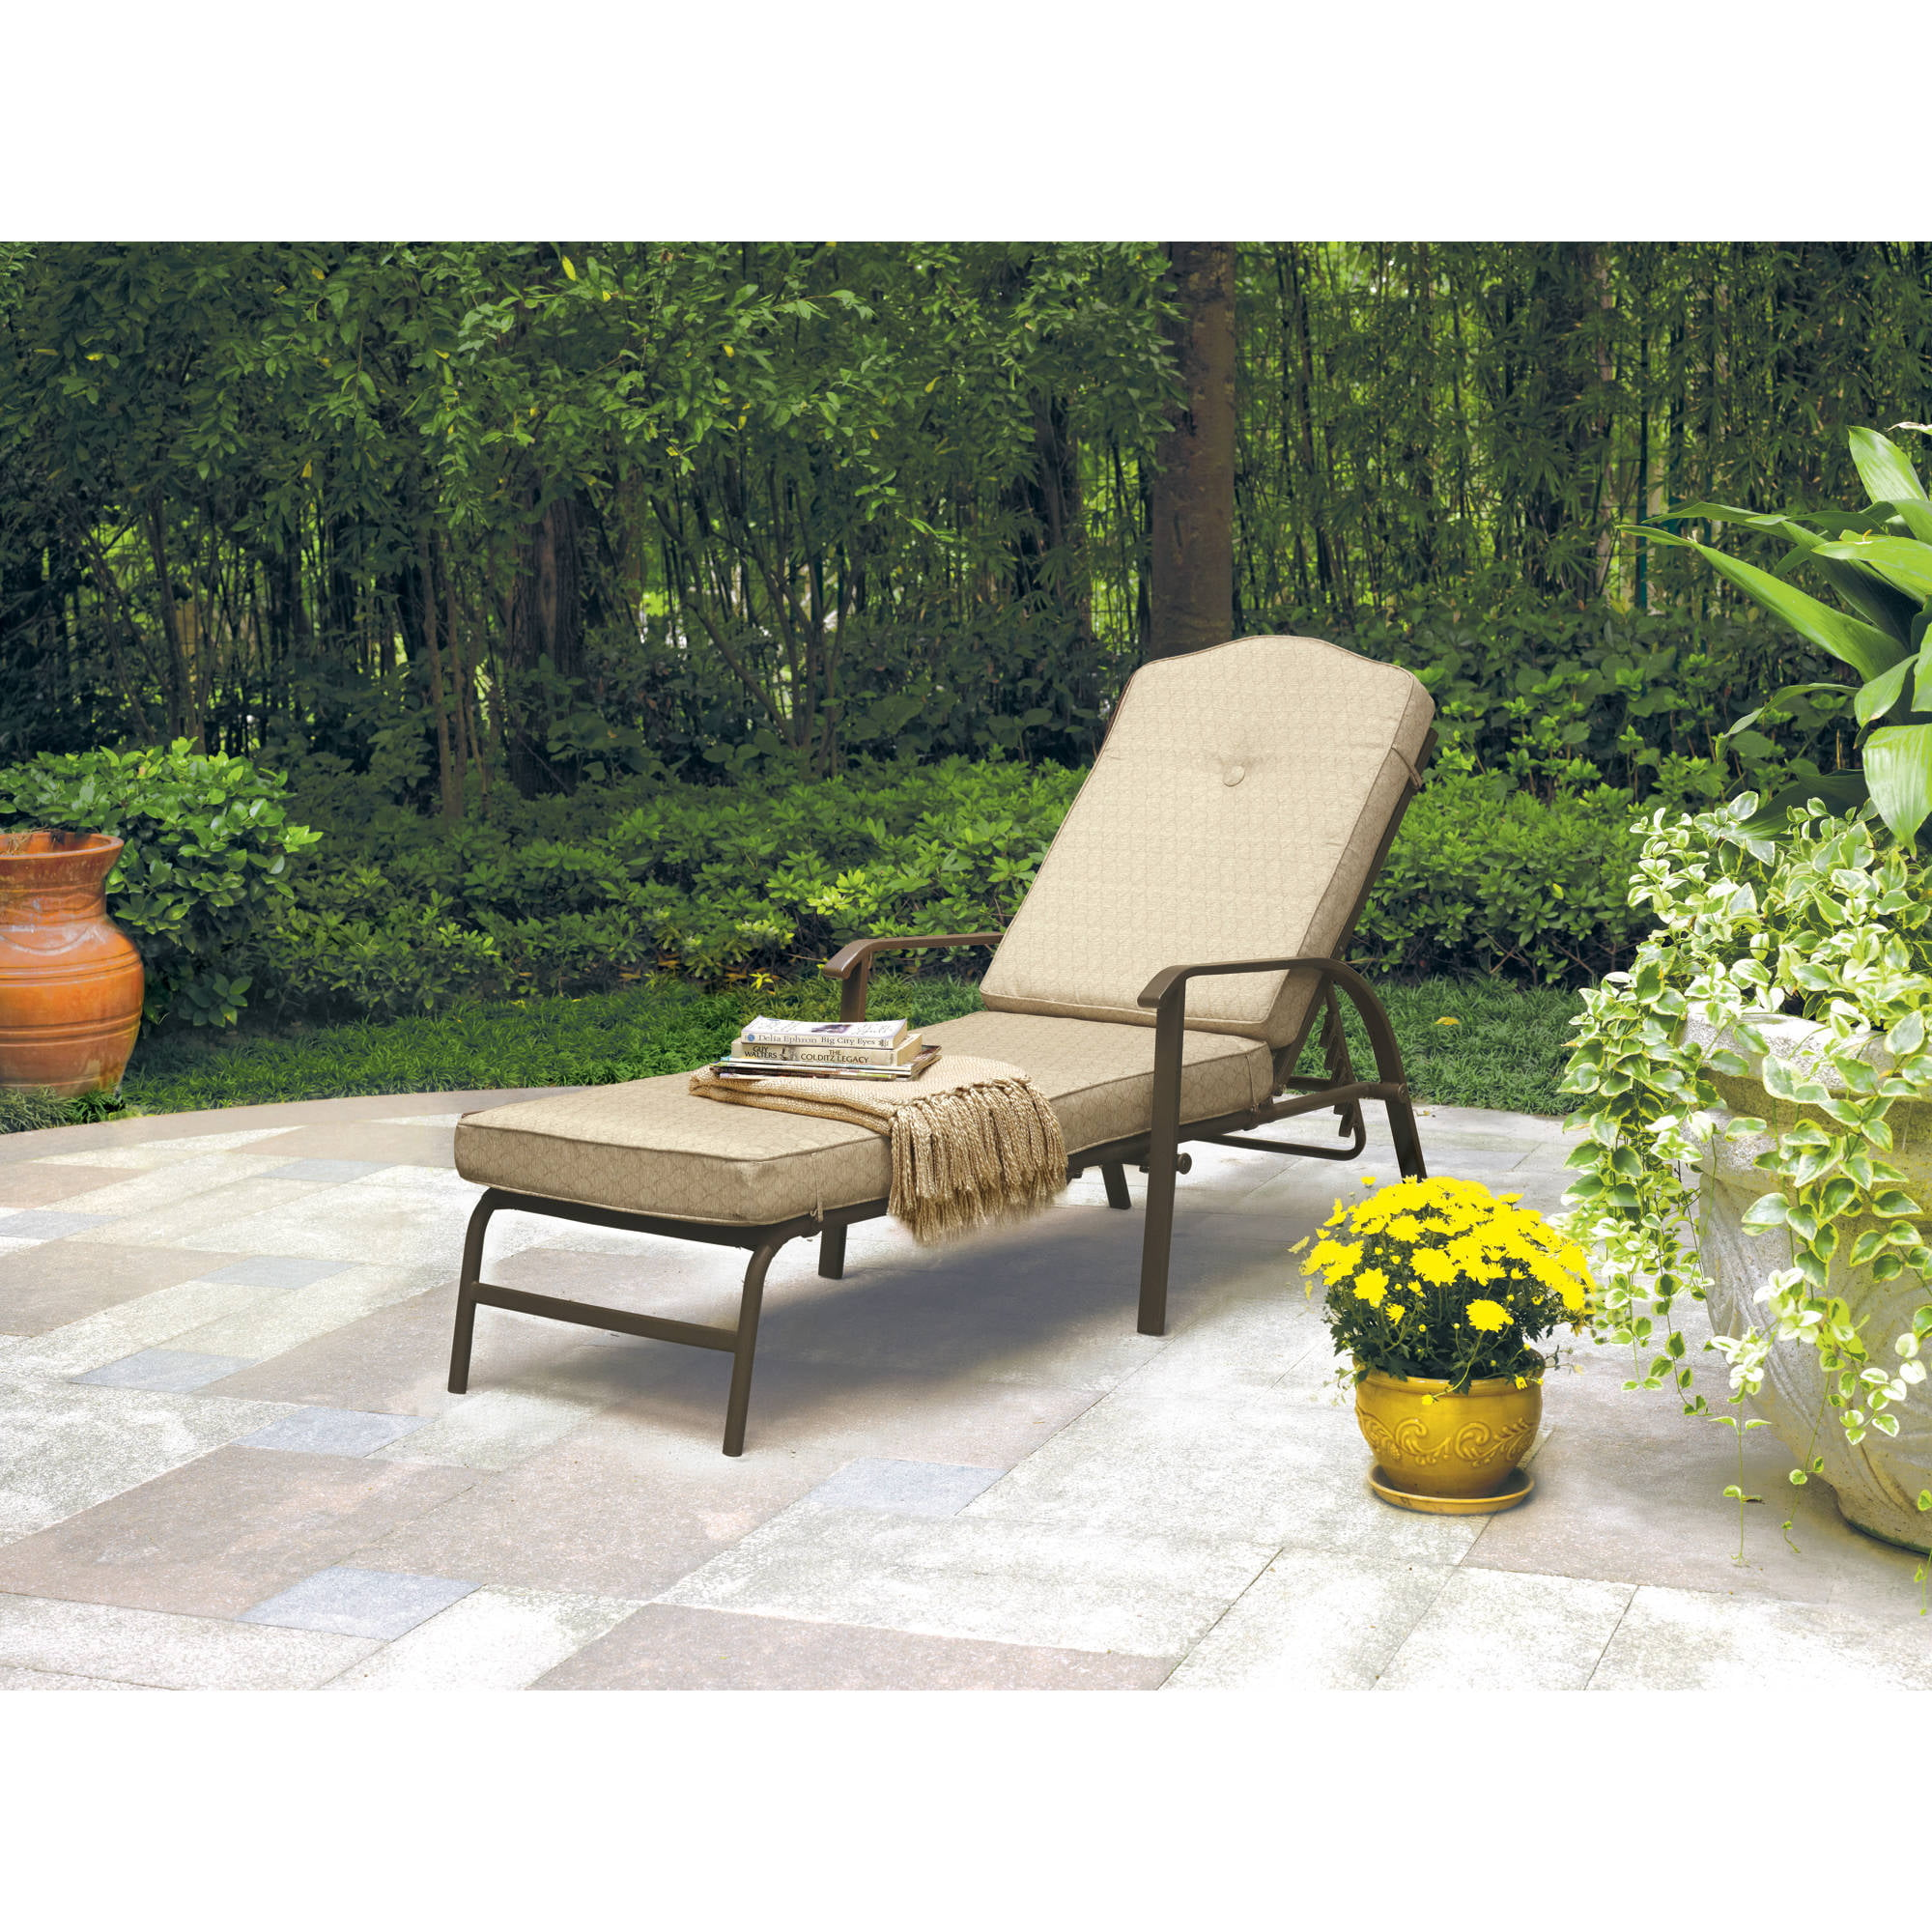 Mainstays Woodland Hills Chaise Lounge Walmartcom - Woodland patio furniture